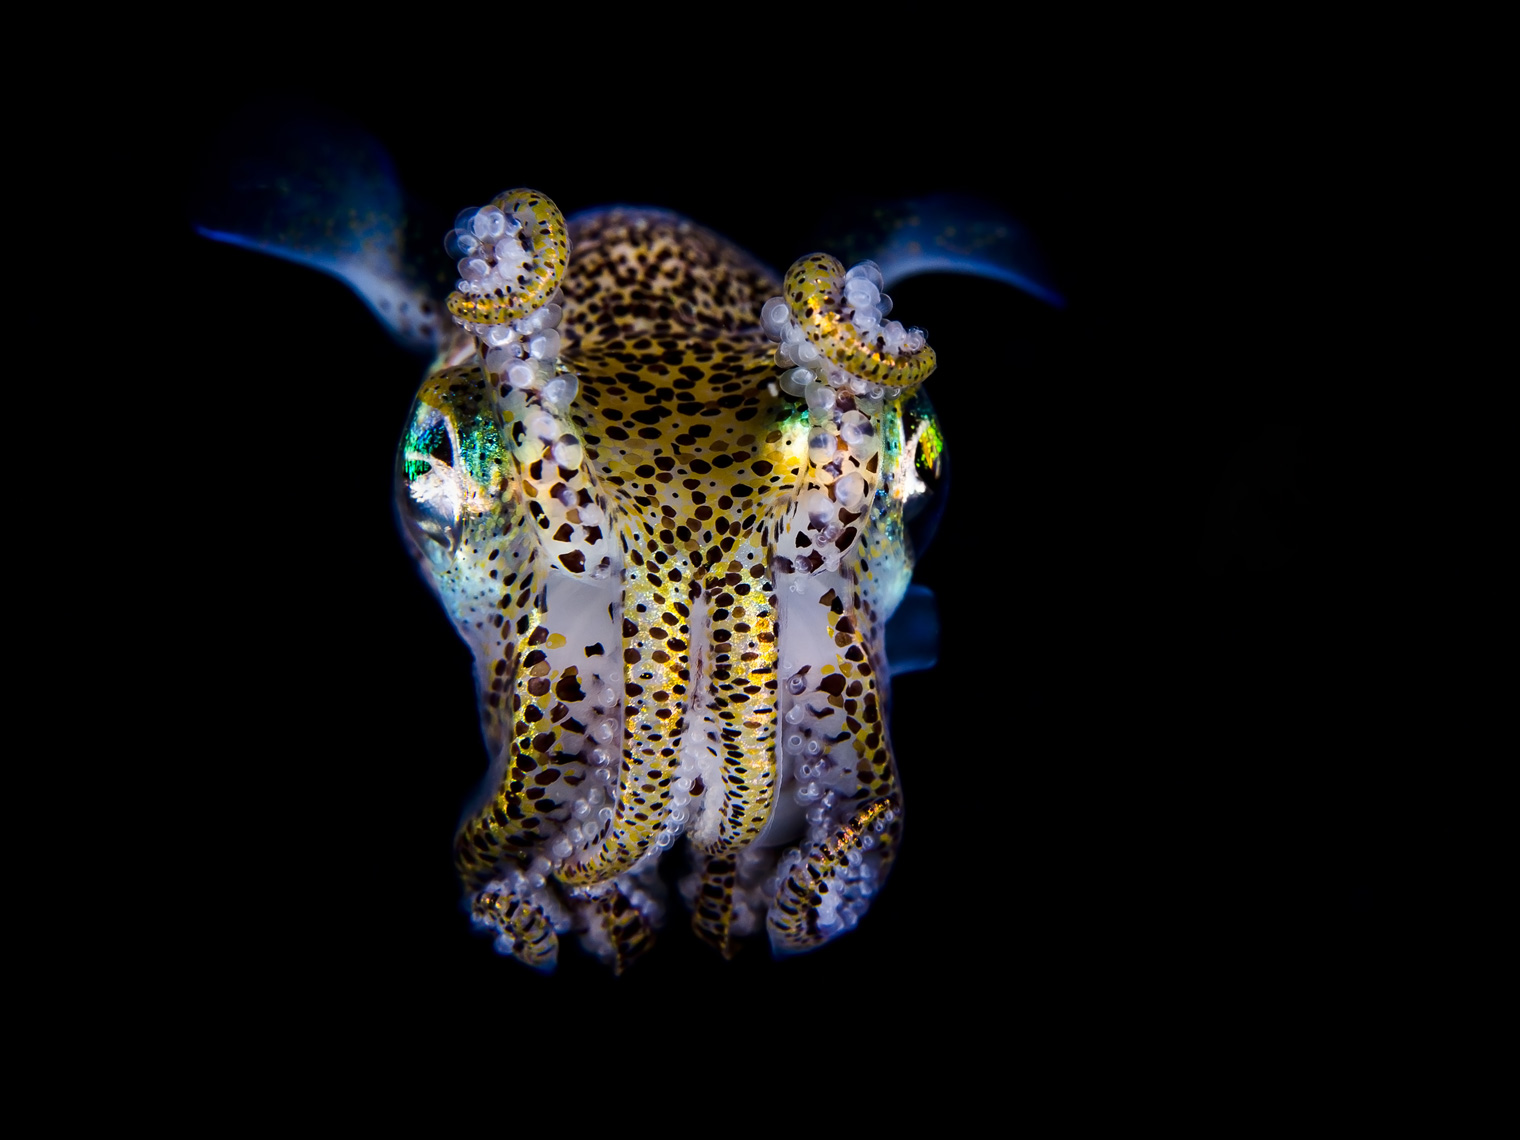 Anilao - bobtail squid at night